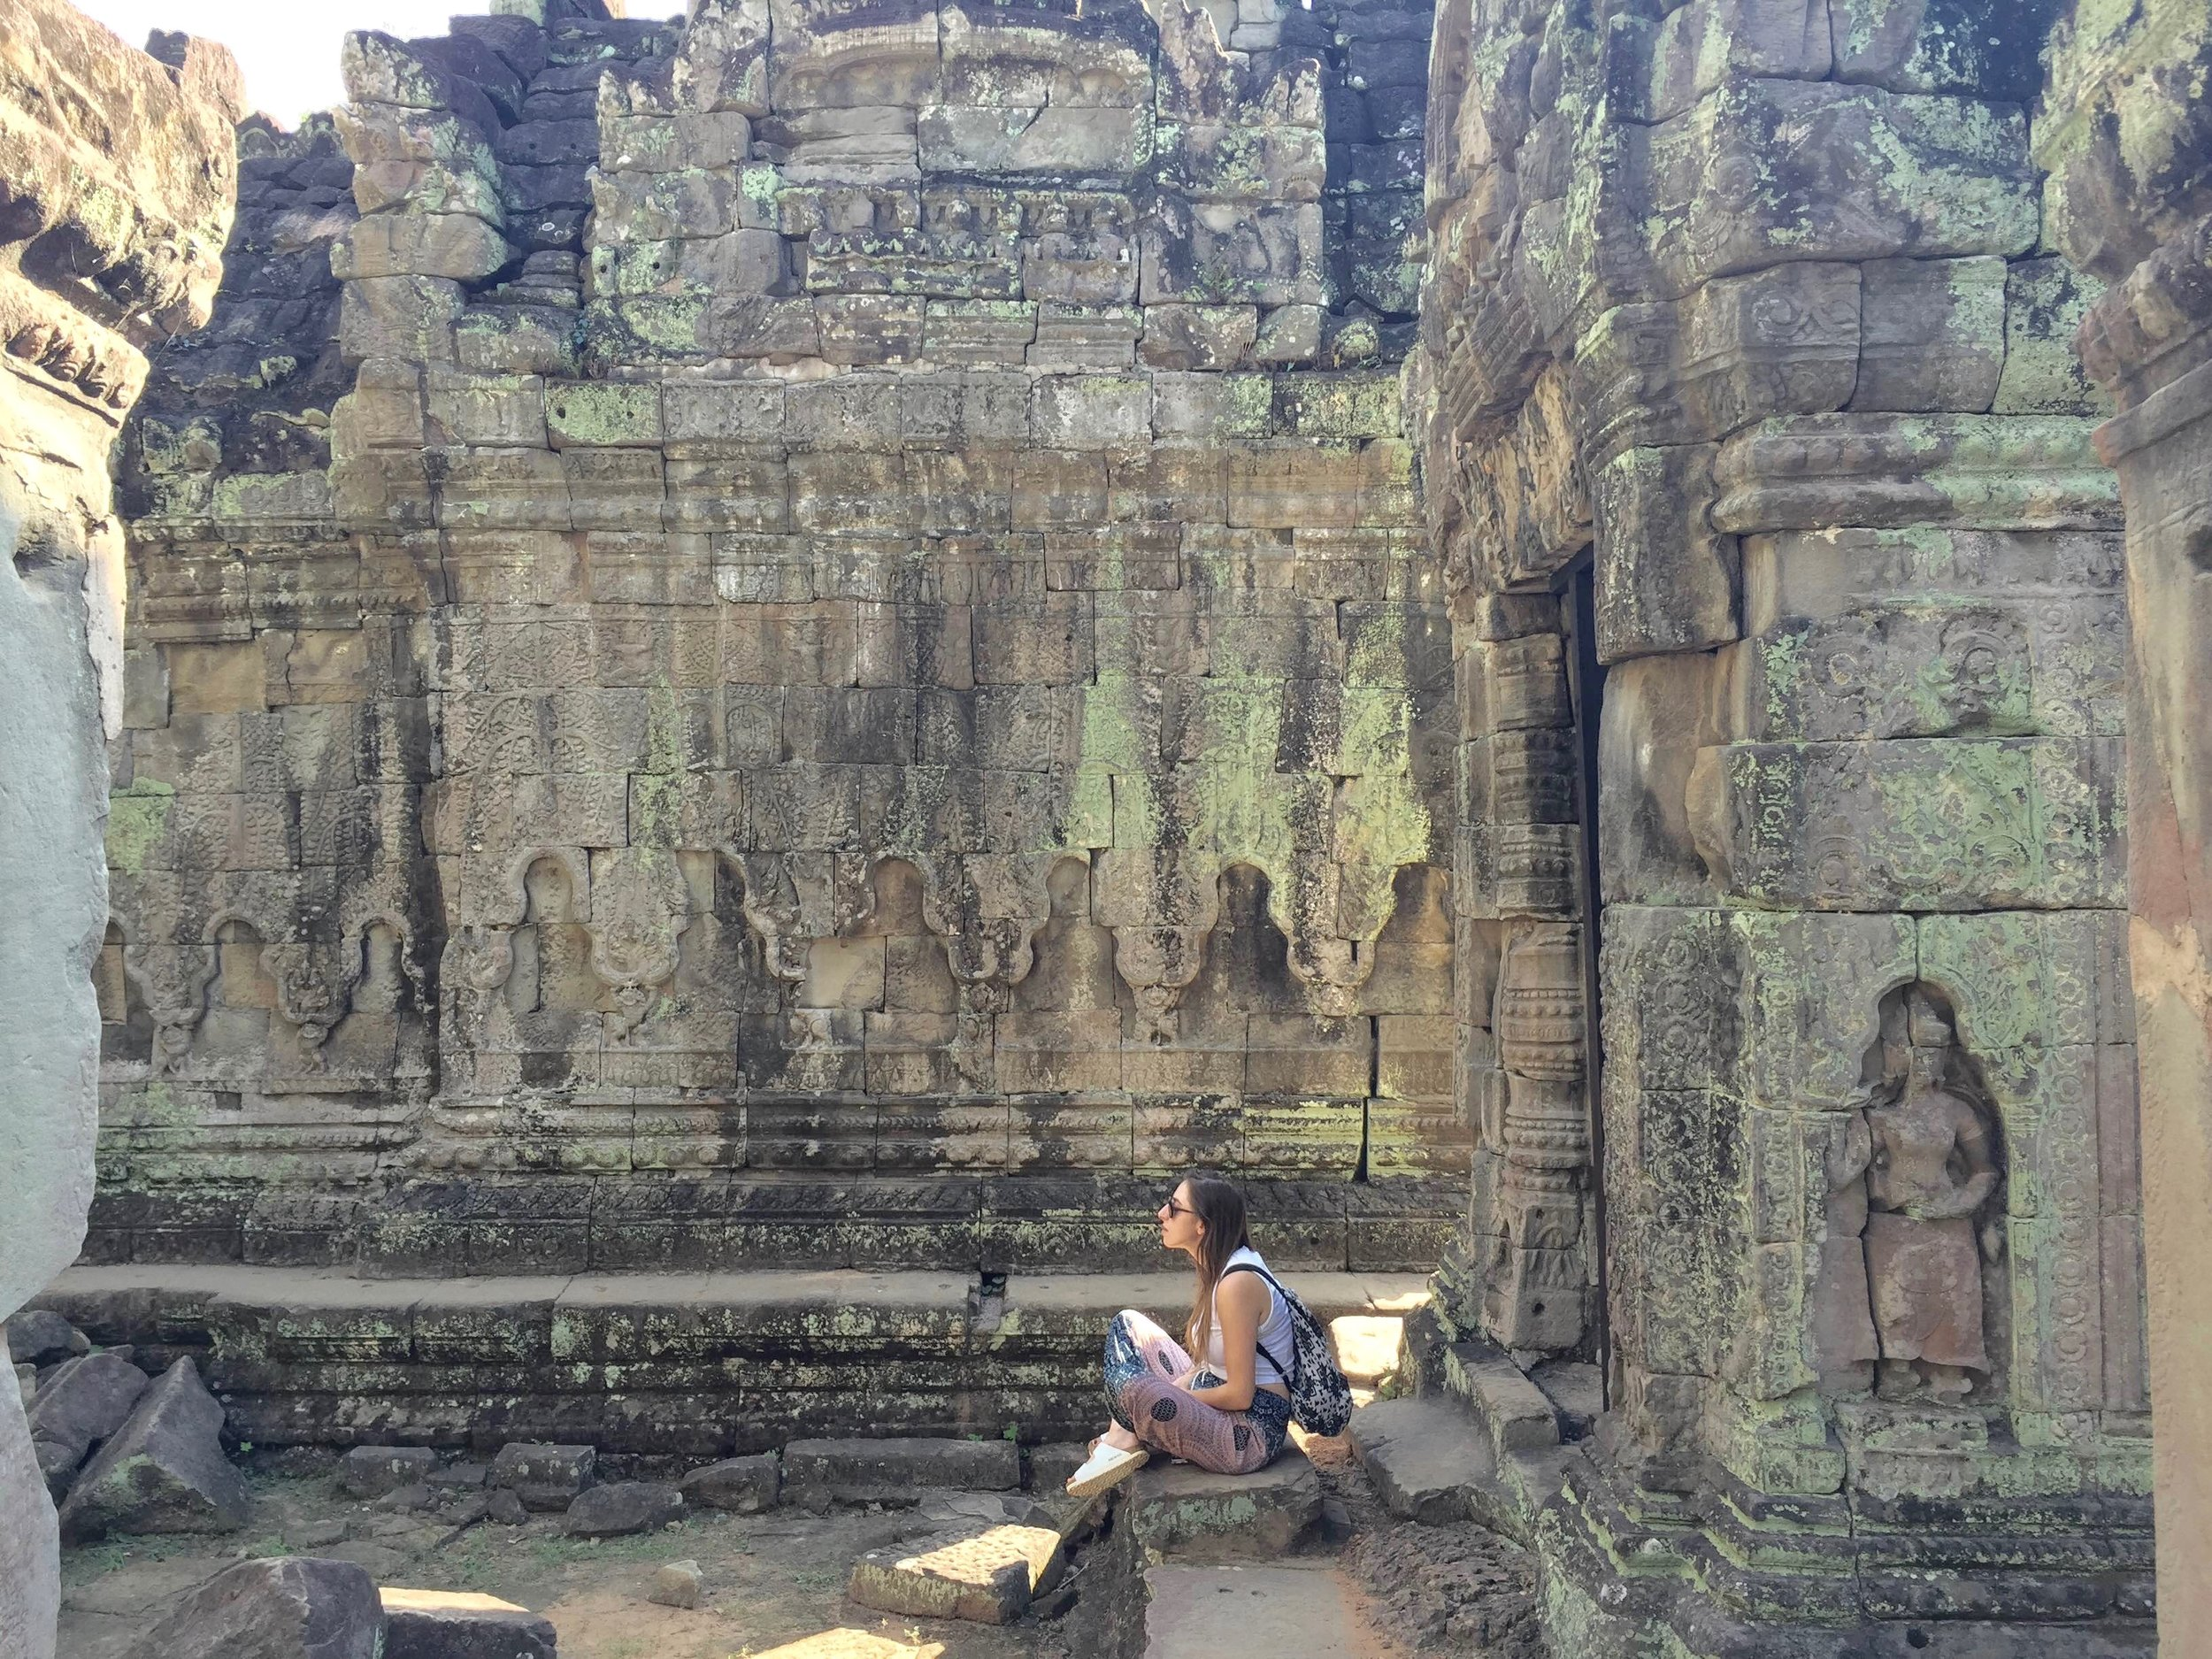 Contemplating the meaning of life at Preah Khan.